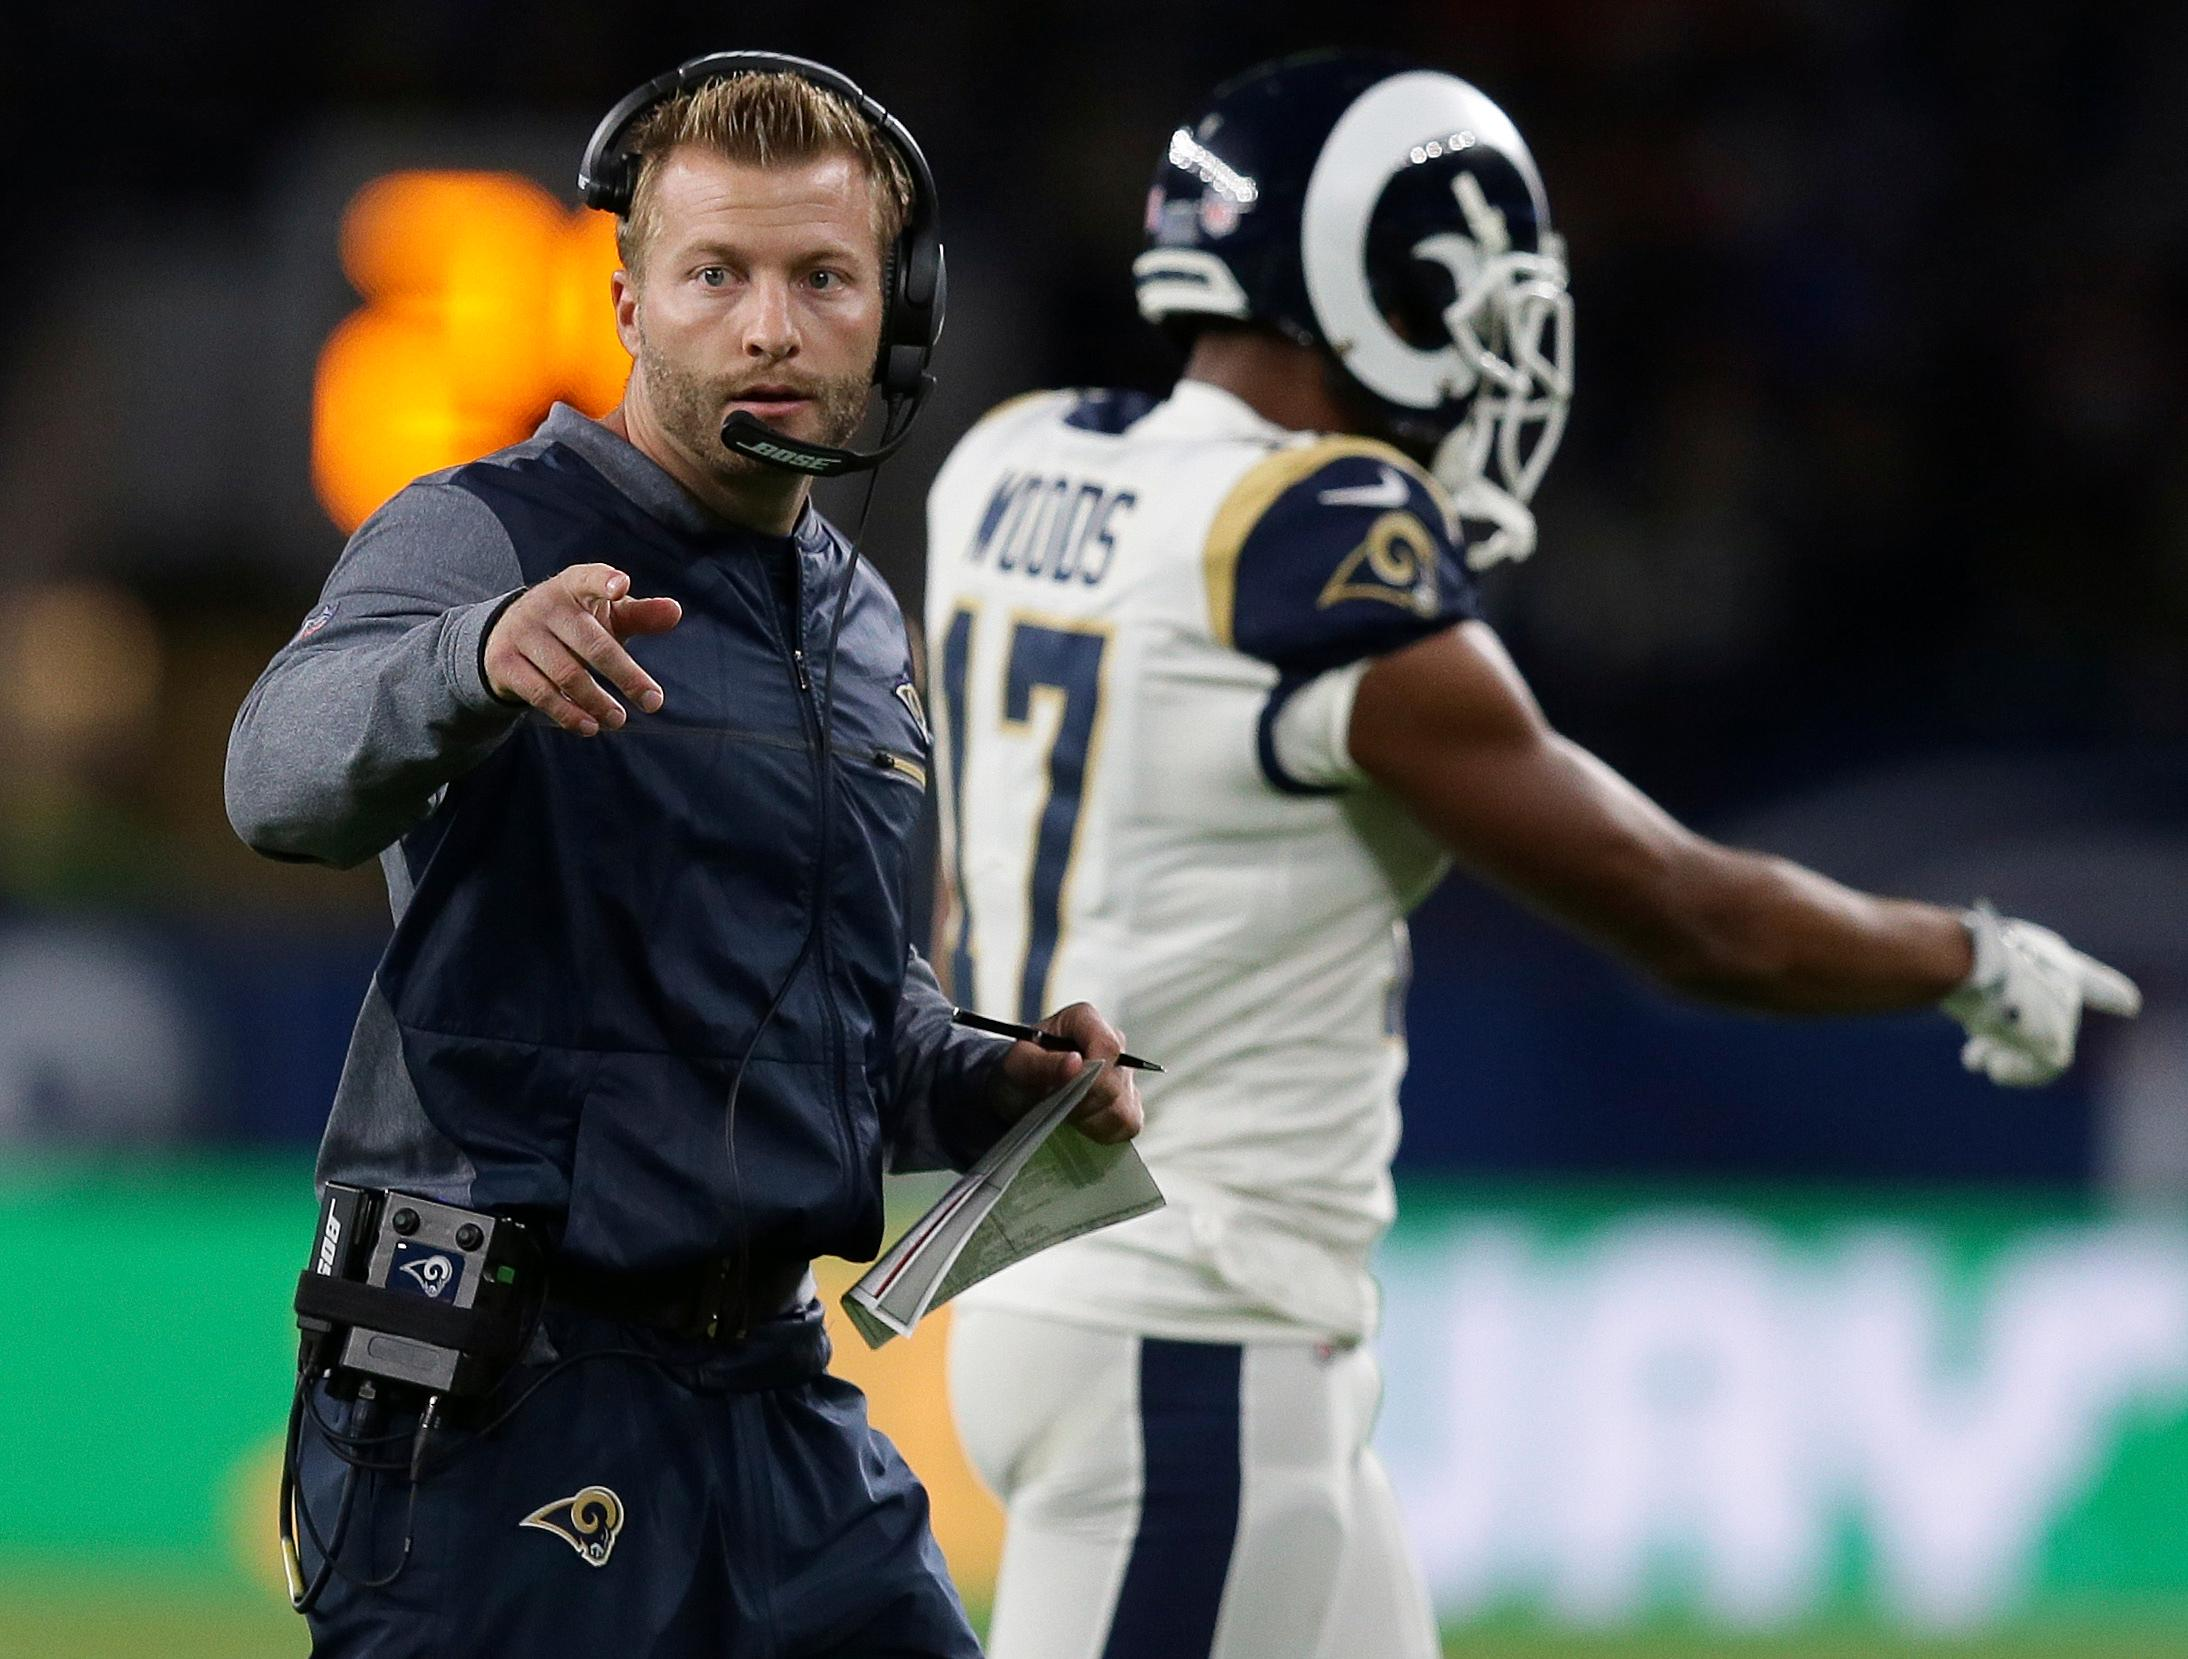 FILE -- In this Oct. 22, 2017, file photo, Los Angeles Rams head coach Sean McVay walks on the field during the first half of an NFL football game against Arizona Cardinals at Twickenham Stadium in London.  (AP Photo/Tim Ireland, File)